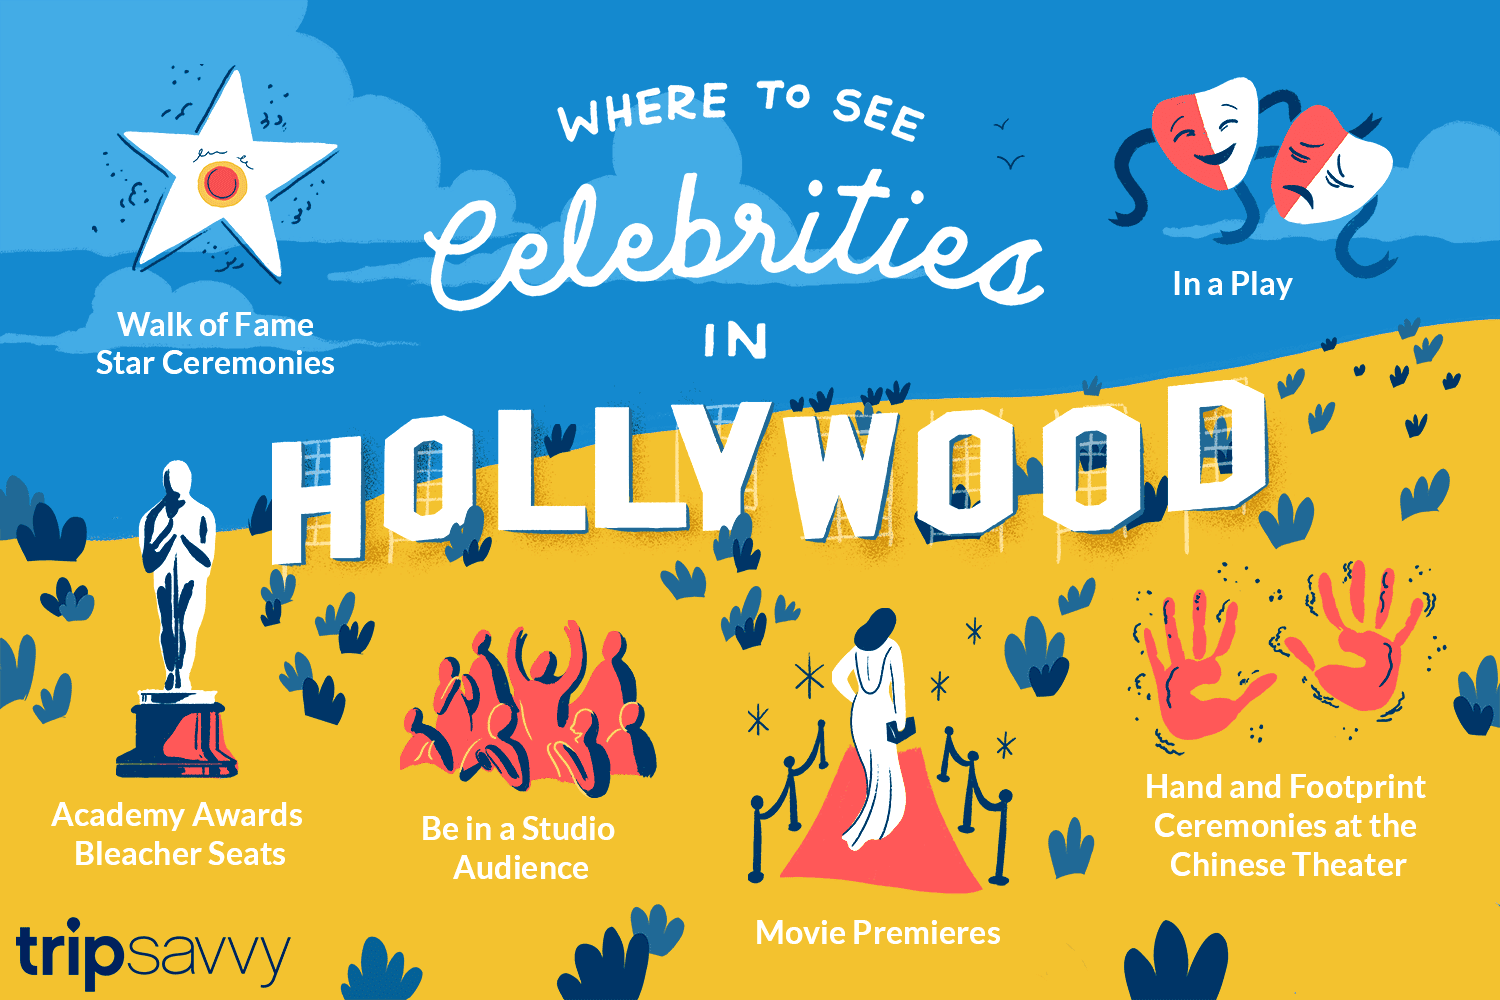 Where to See Celebrities in Hollywood